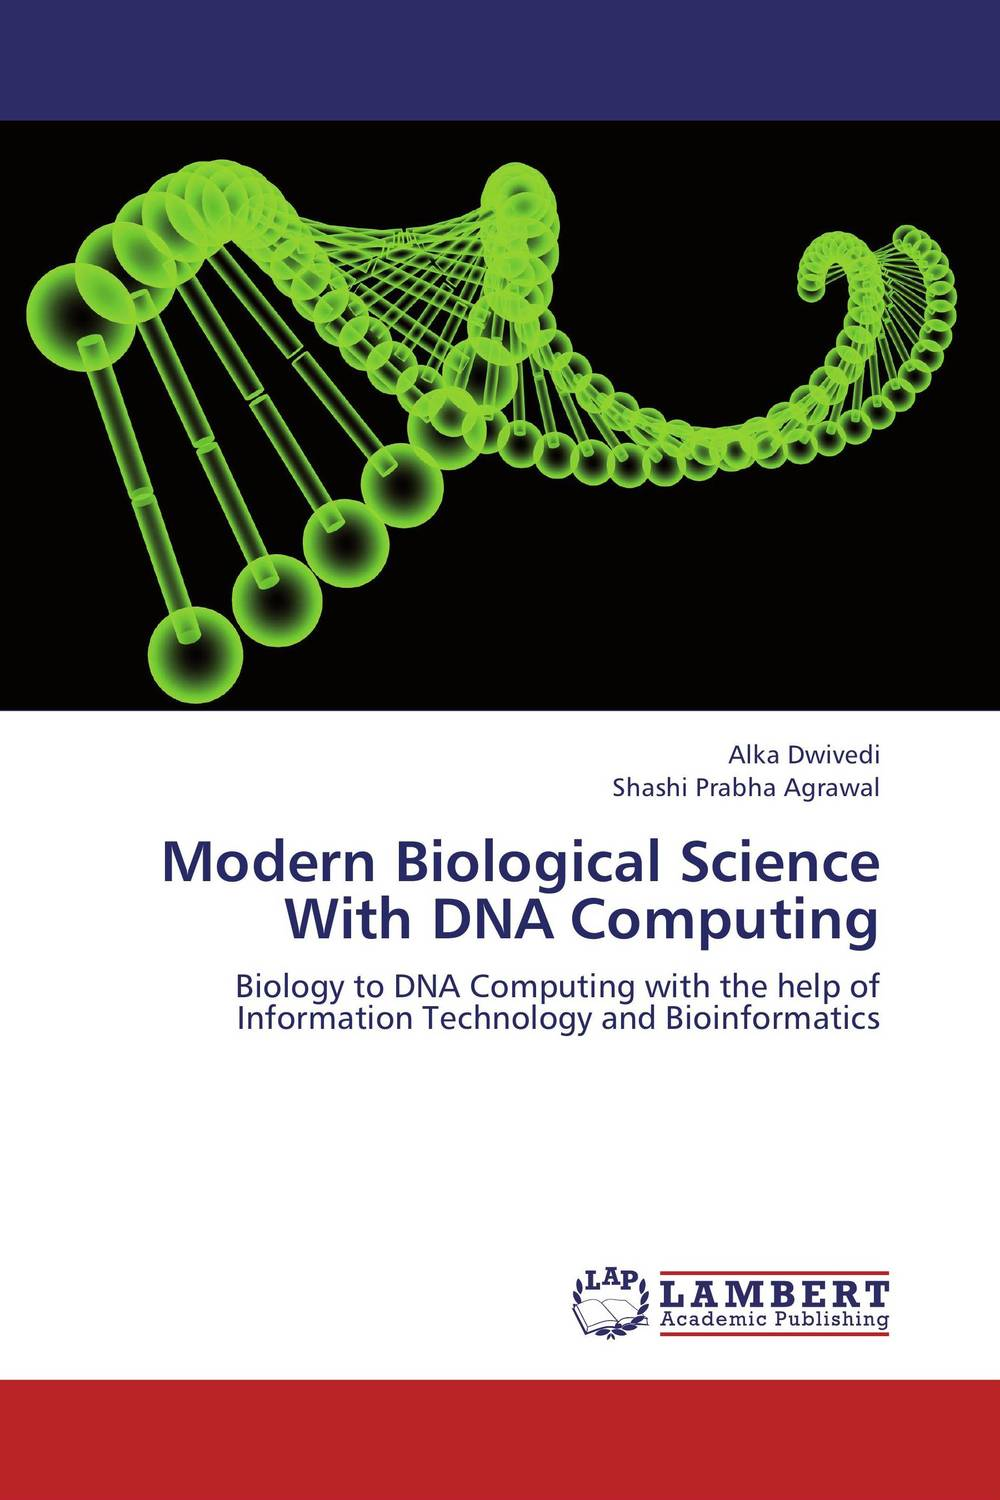 Modern Biological Science With DNA Computing